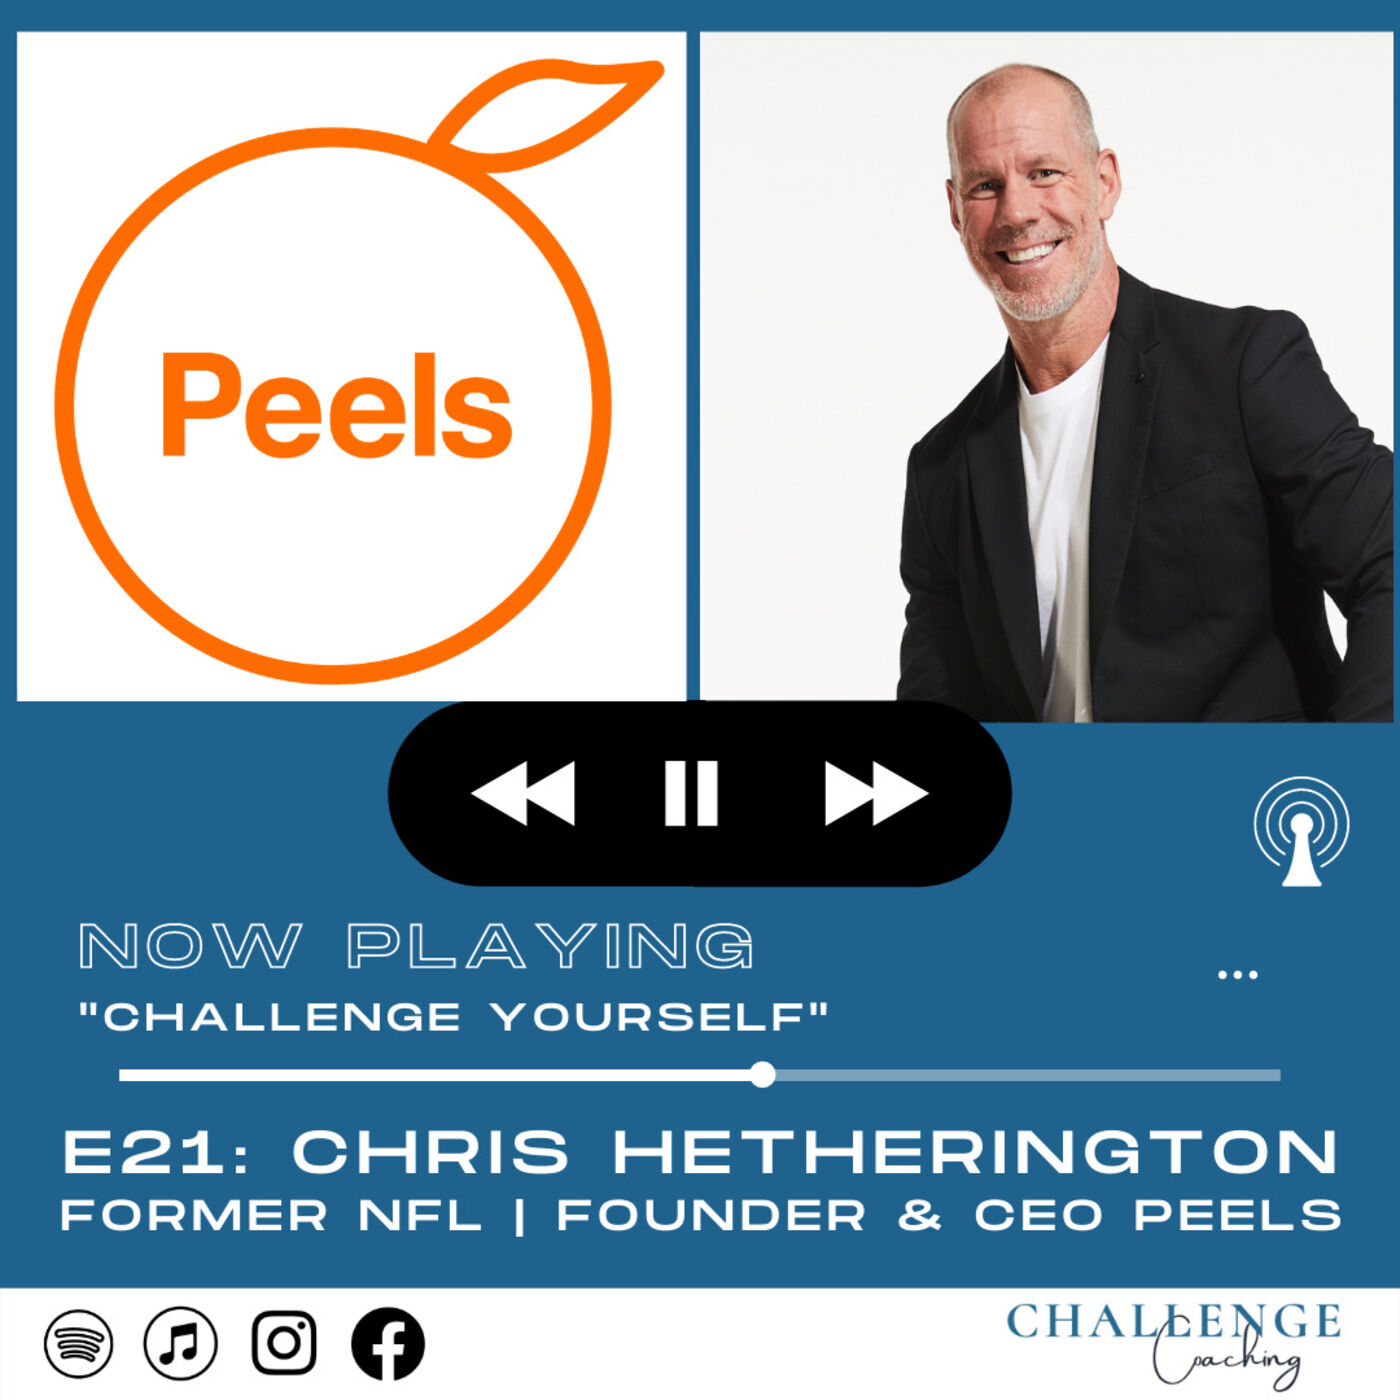 E21: Chris Hetherington: Former NFL Player and Founder & CEO Peels